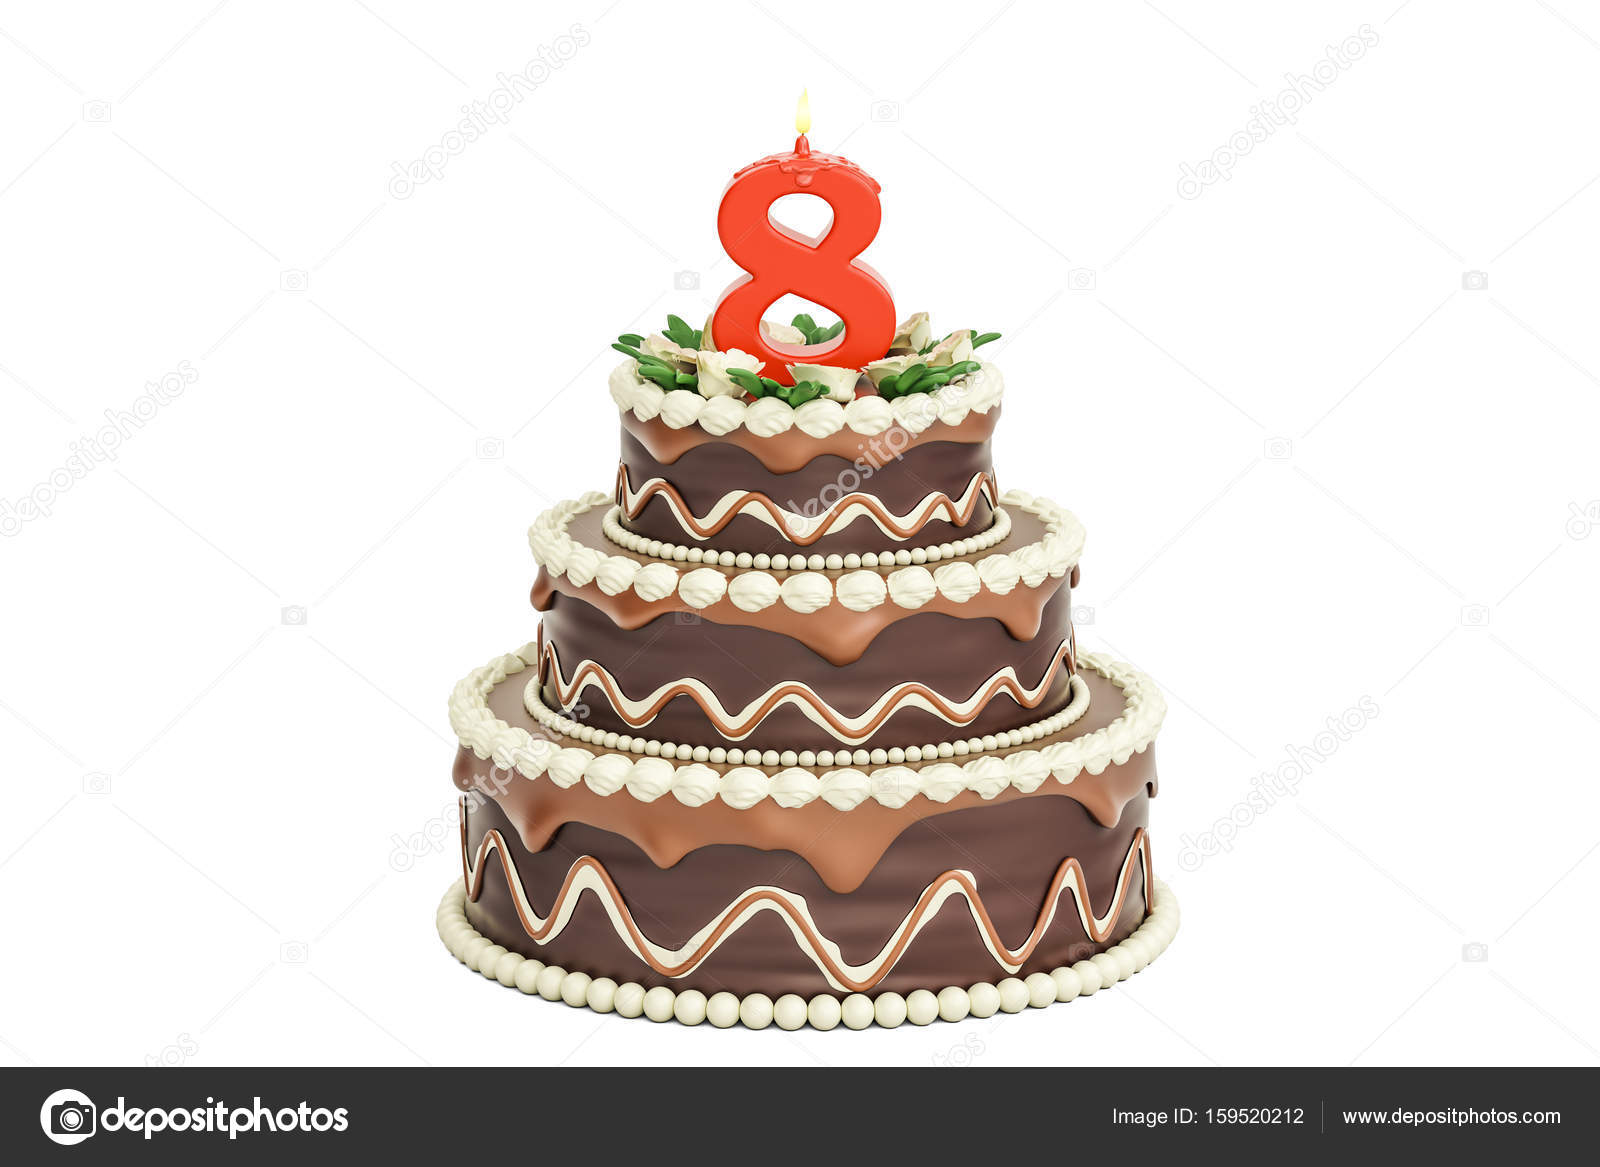 Chocolate Birthday Cake With Candle Number 8 3D Rendering Isolated On White Background Photo By